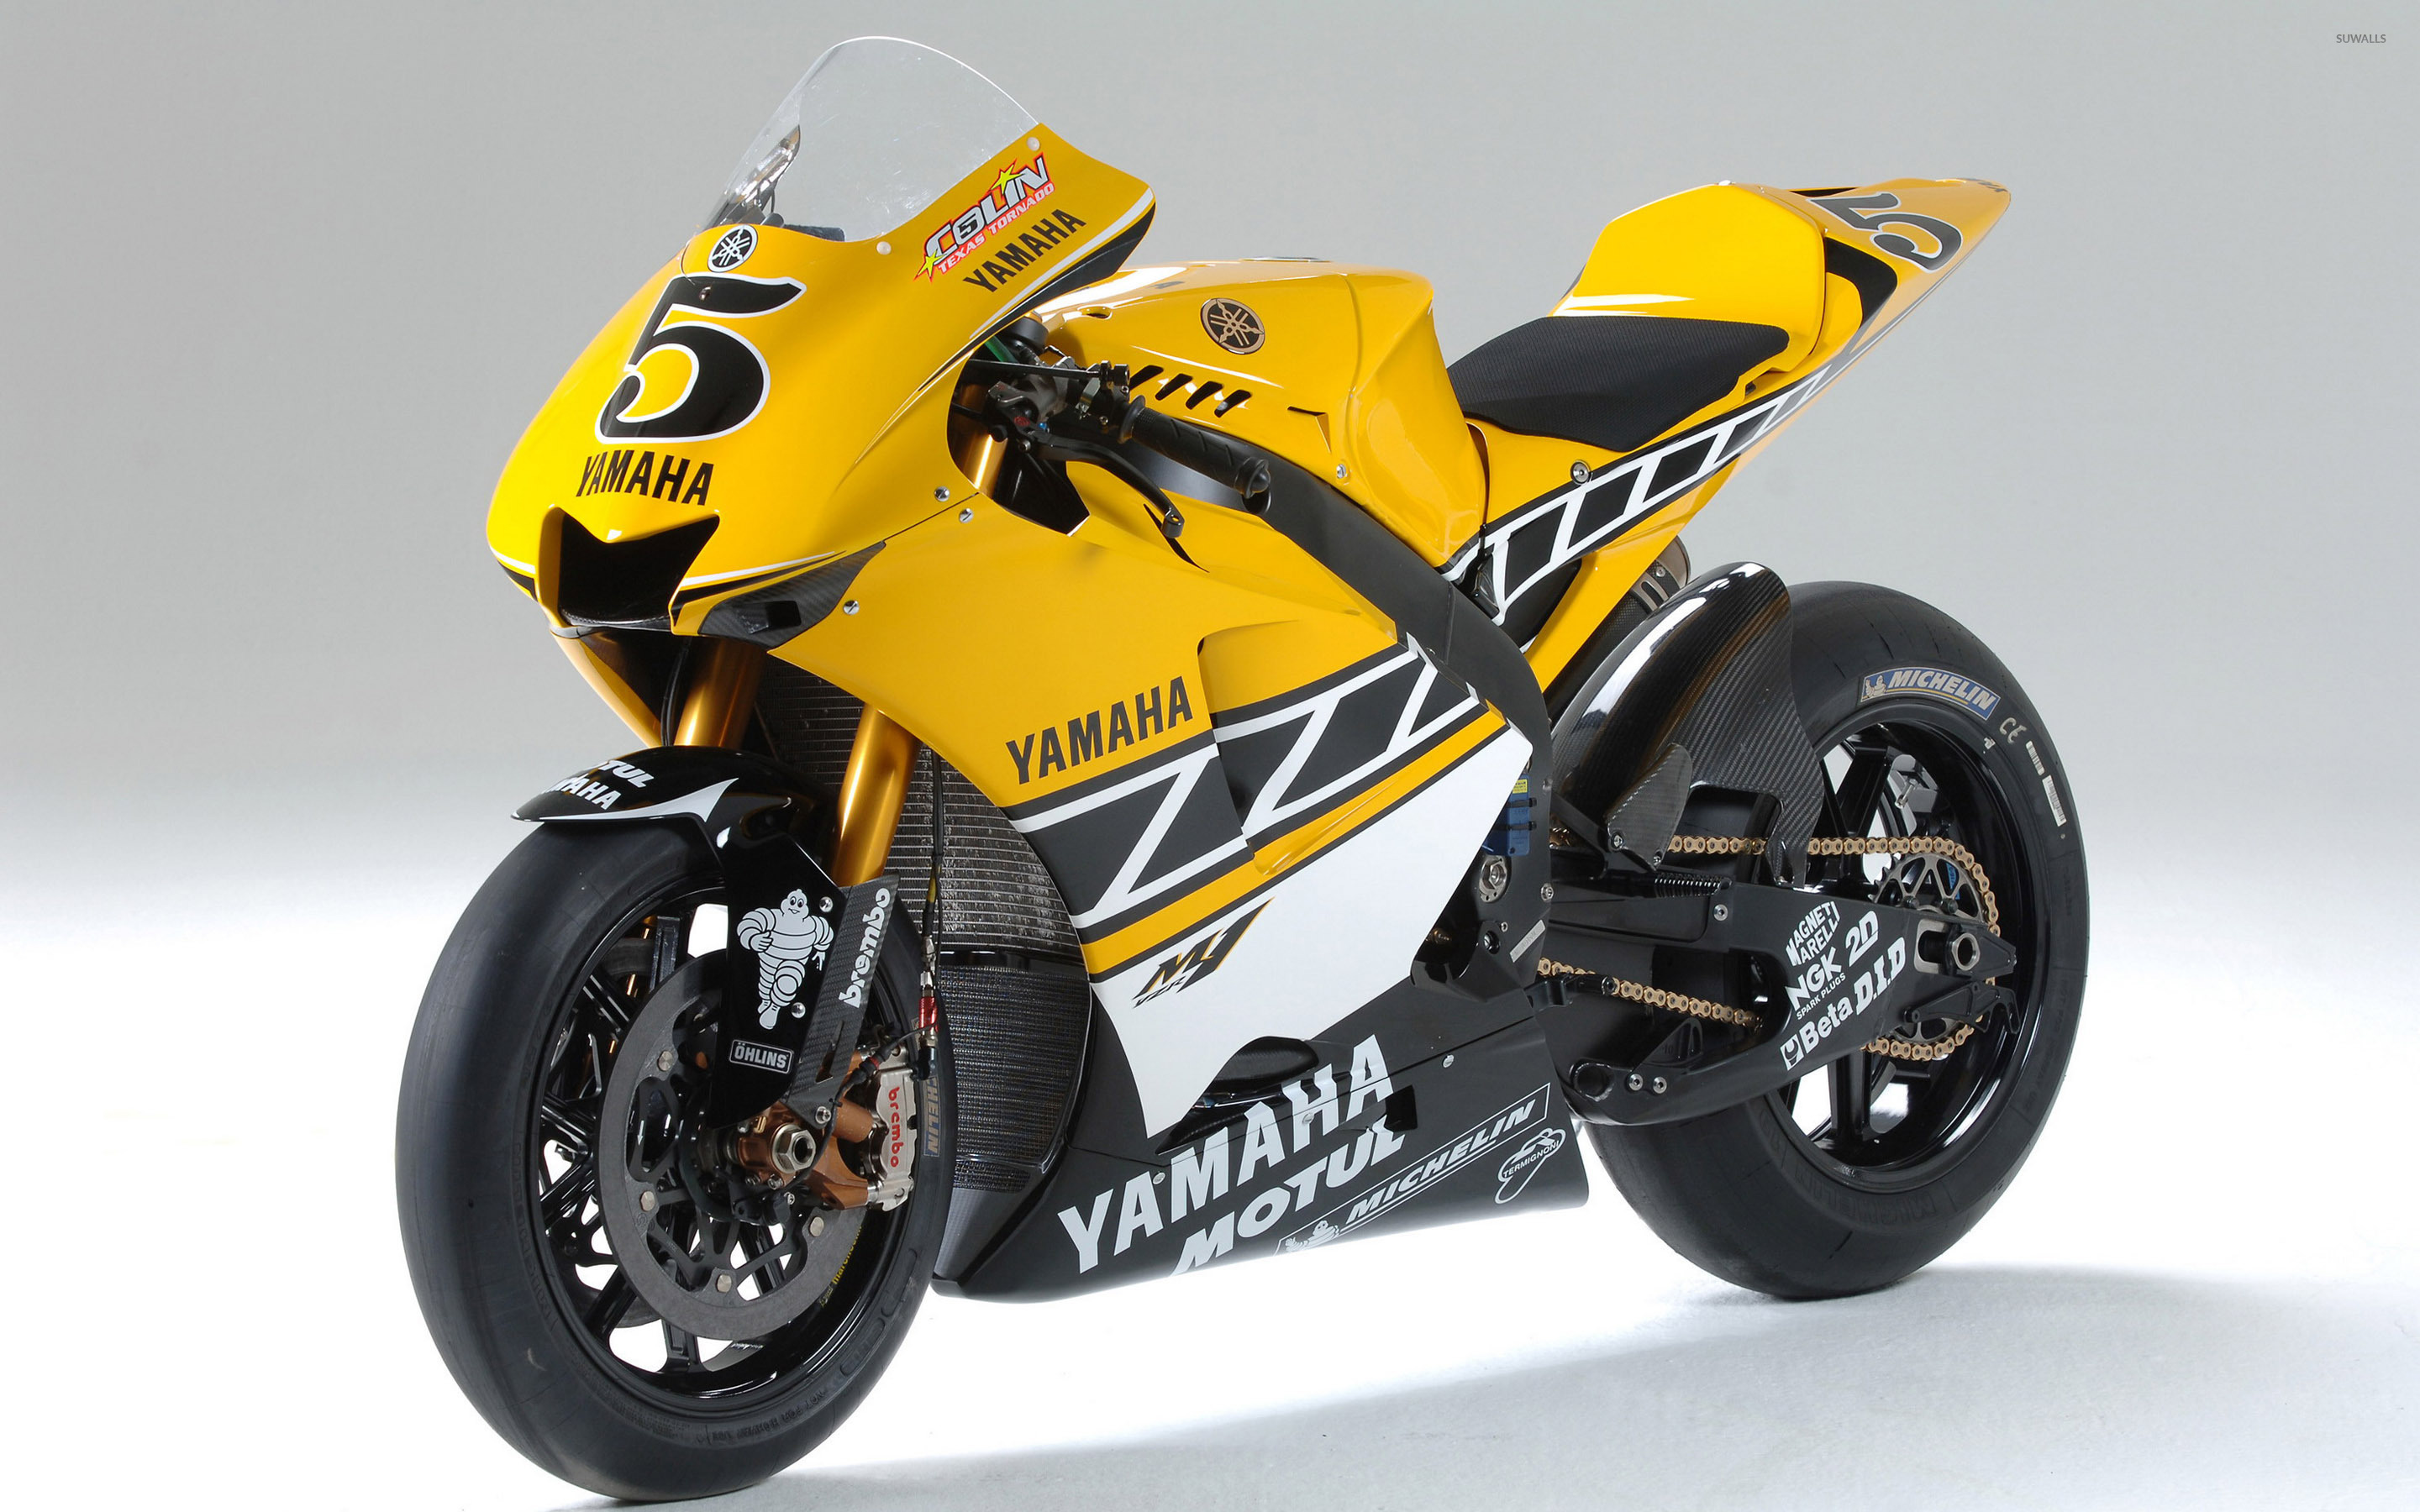 yamaha yzr-m1 [2] wallpaper - motorcycle wallpapers - #30575